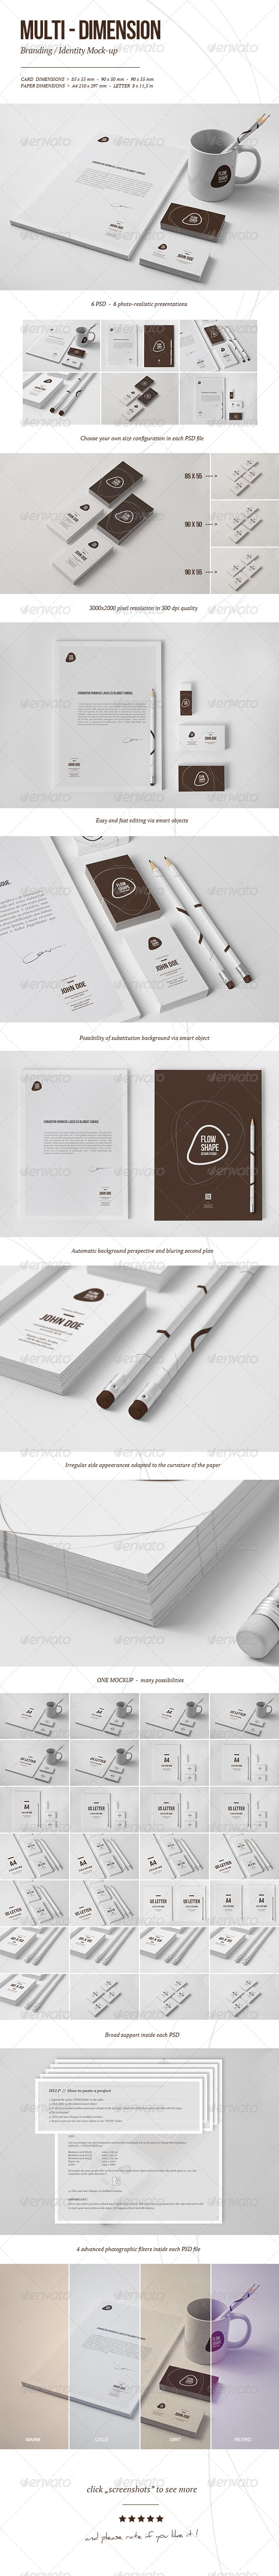 GraphicRiver Multi-dimension Branding Identity Mock-up IV 5099207